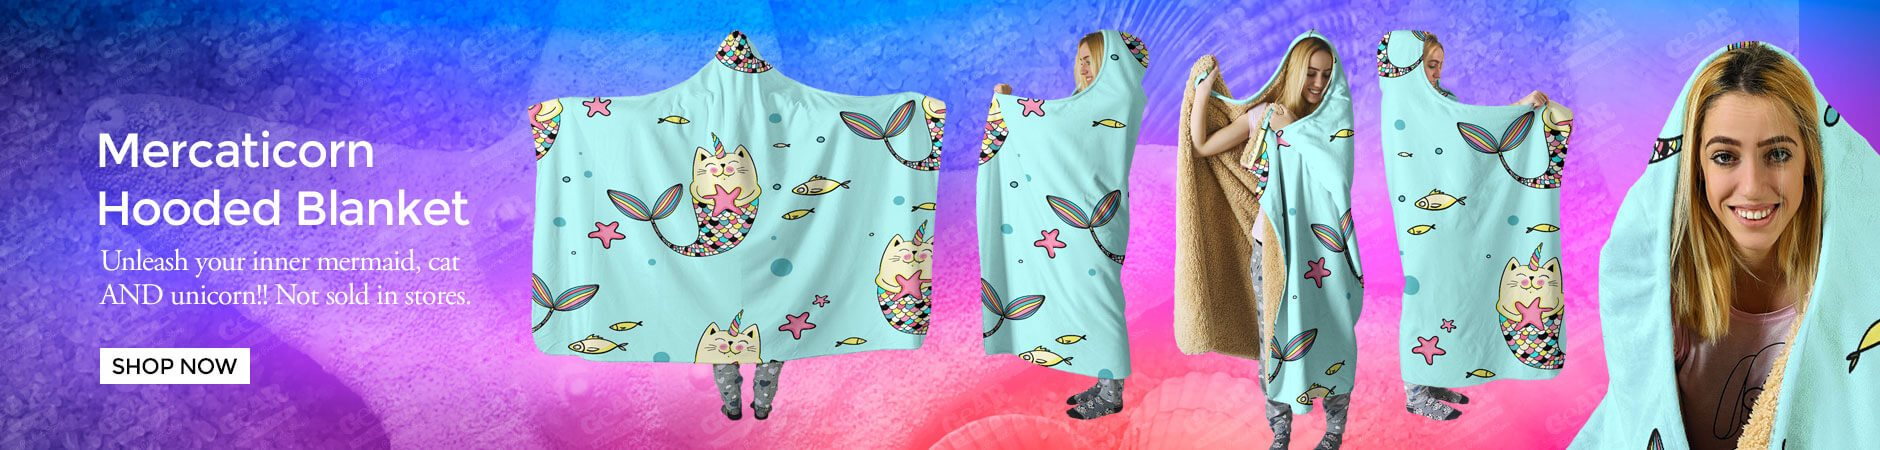 Check out our Mercaticorn Hooded Blanket - Not Sold In Stores - Awesome Product!